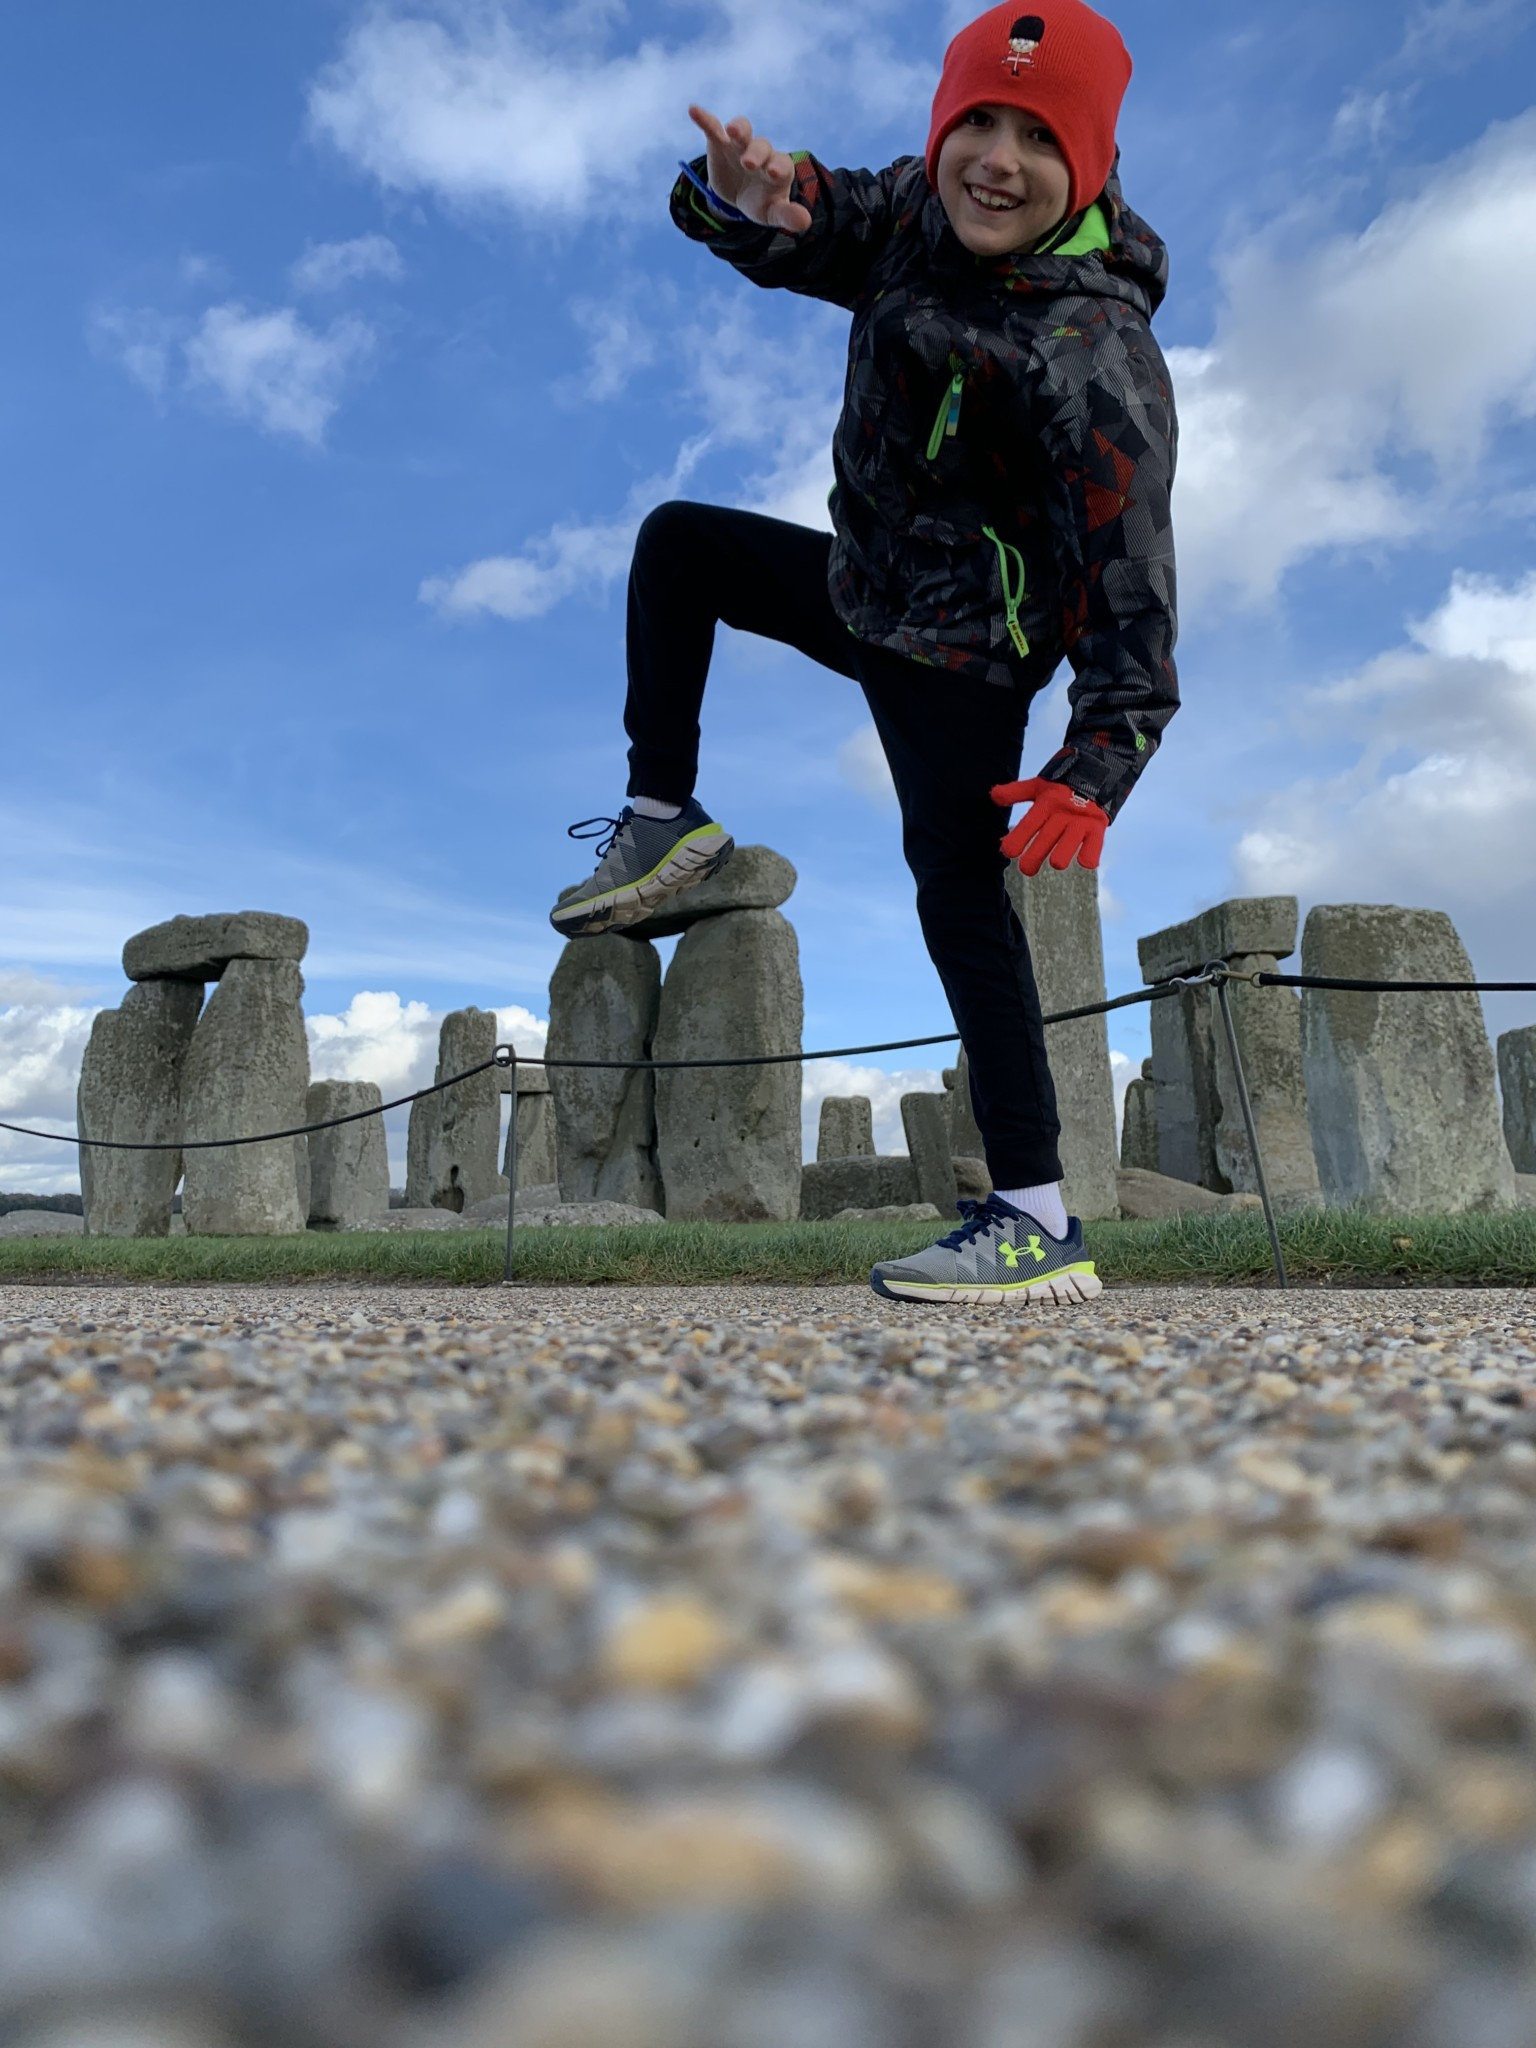 Ethan Pollack appears to step on Stonehenge